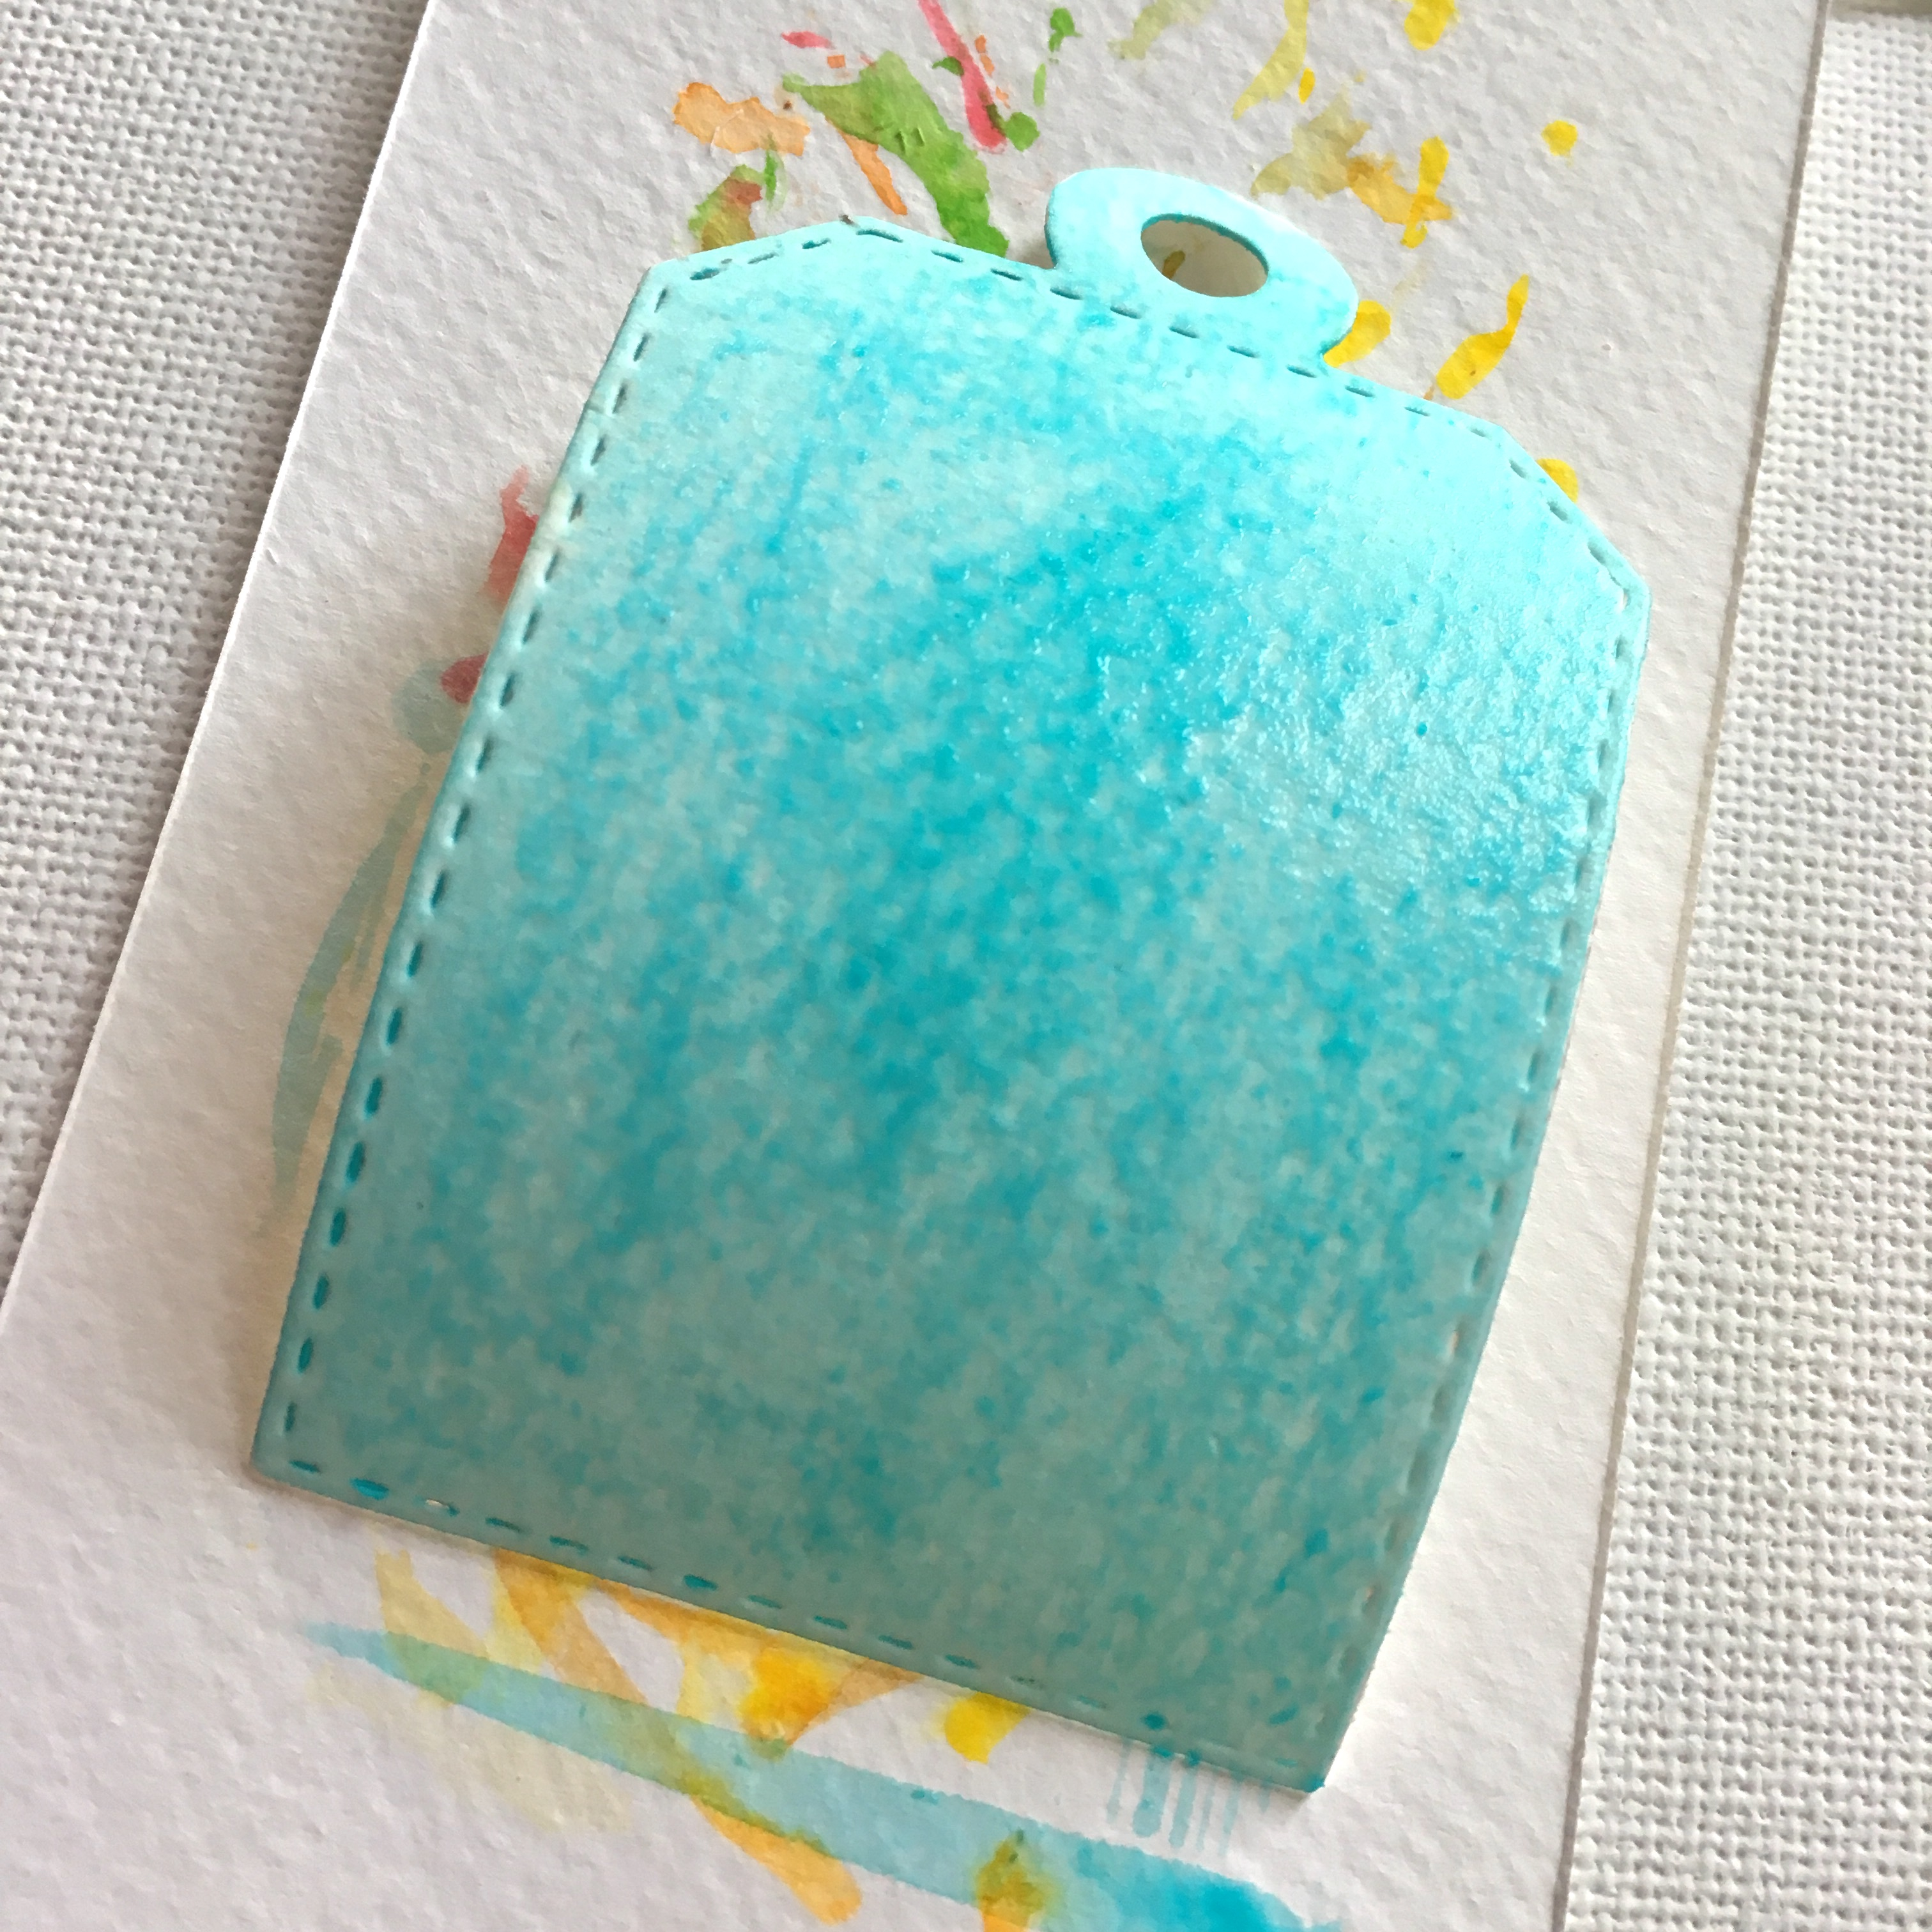 paper tag, coloured in light blue